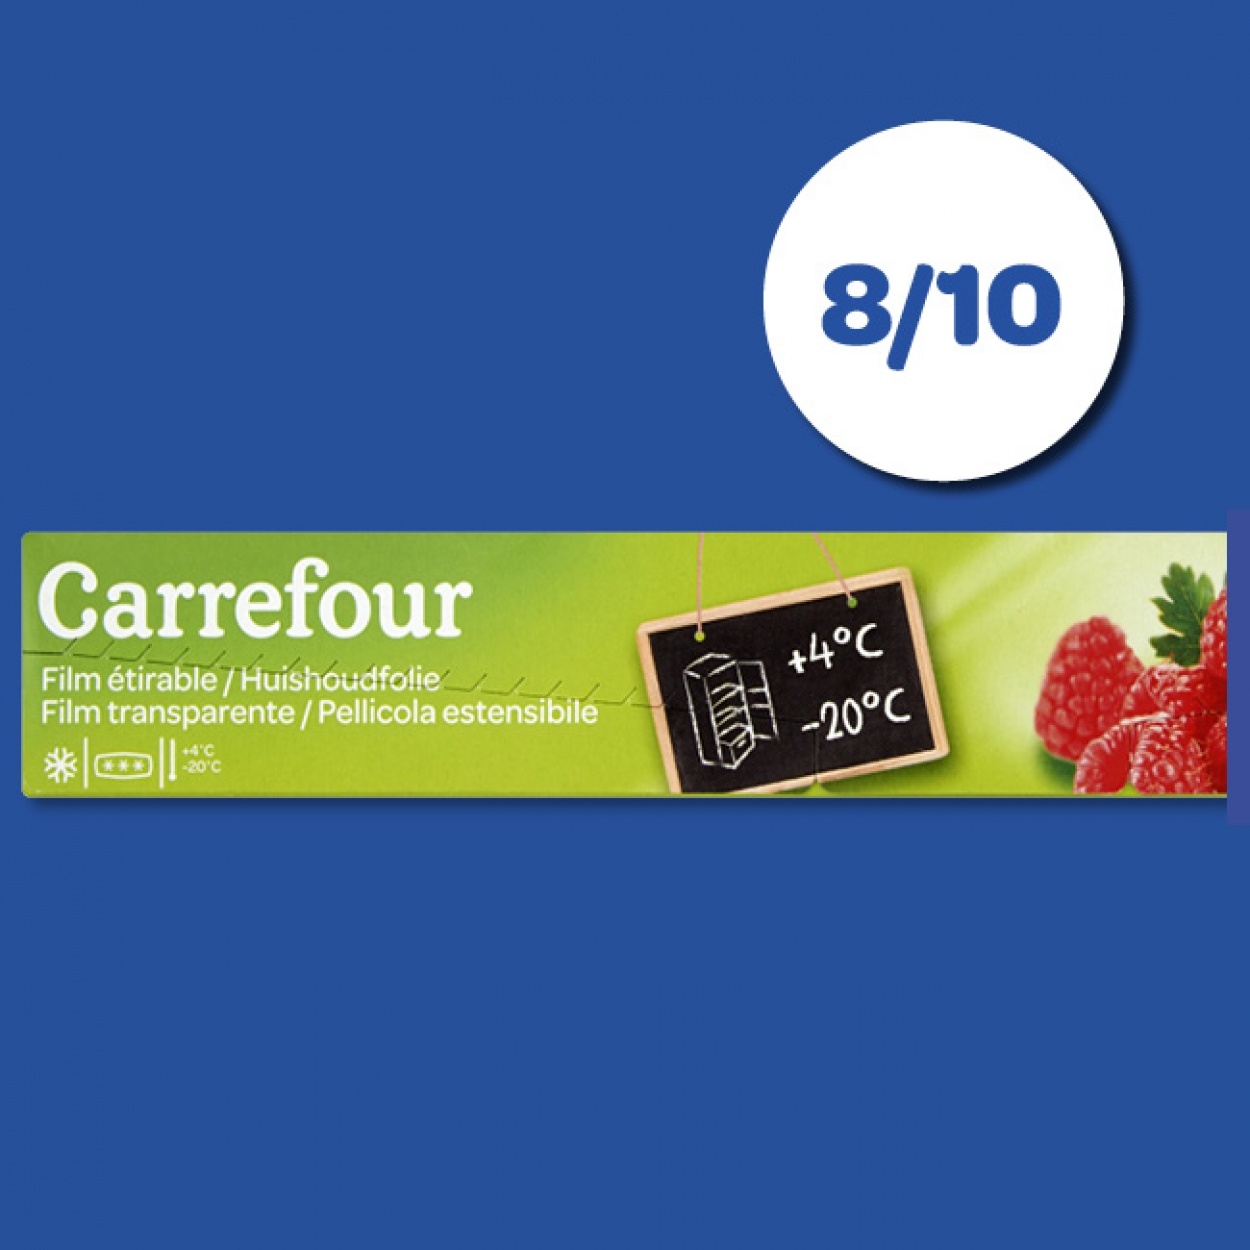 Film étirable - Carrefour